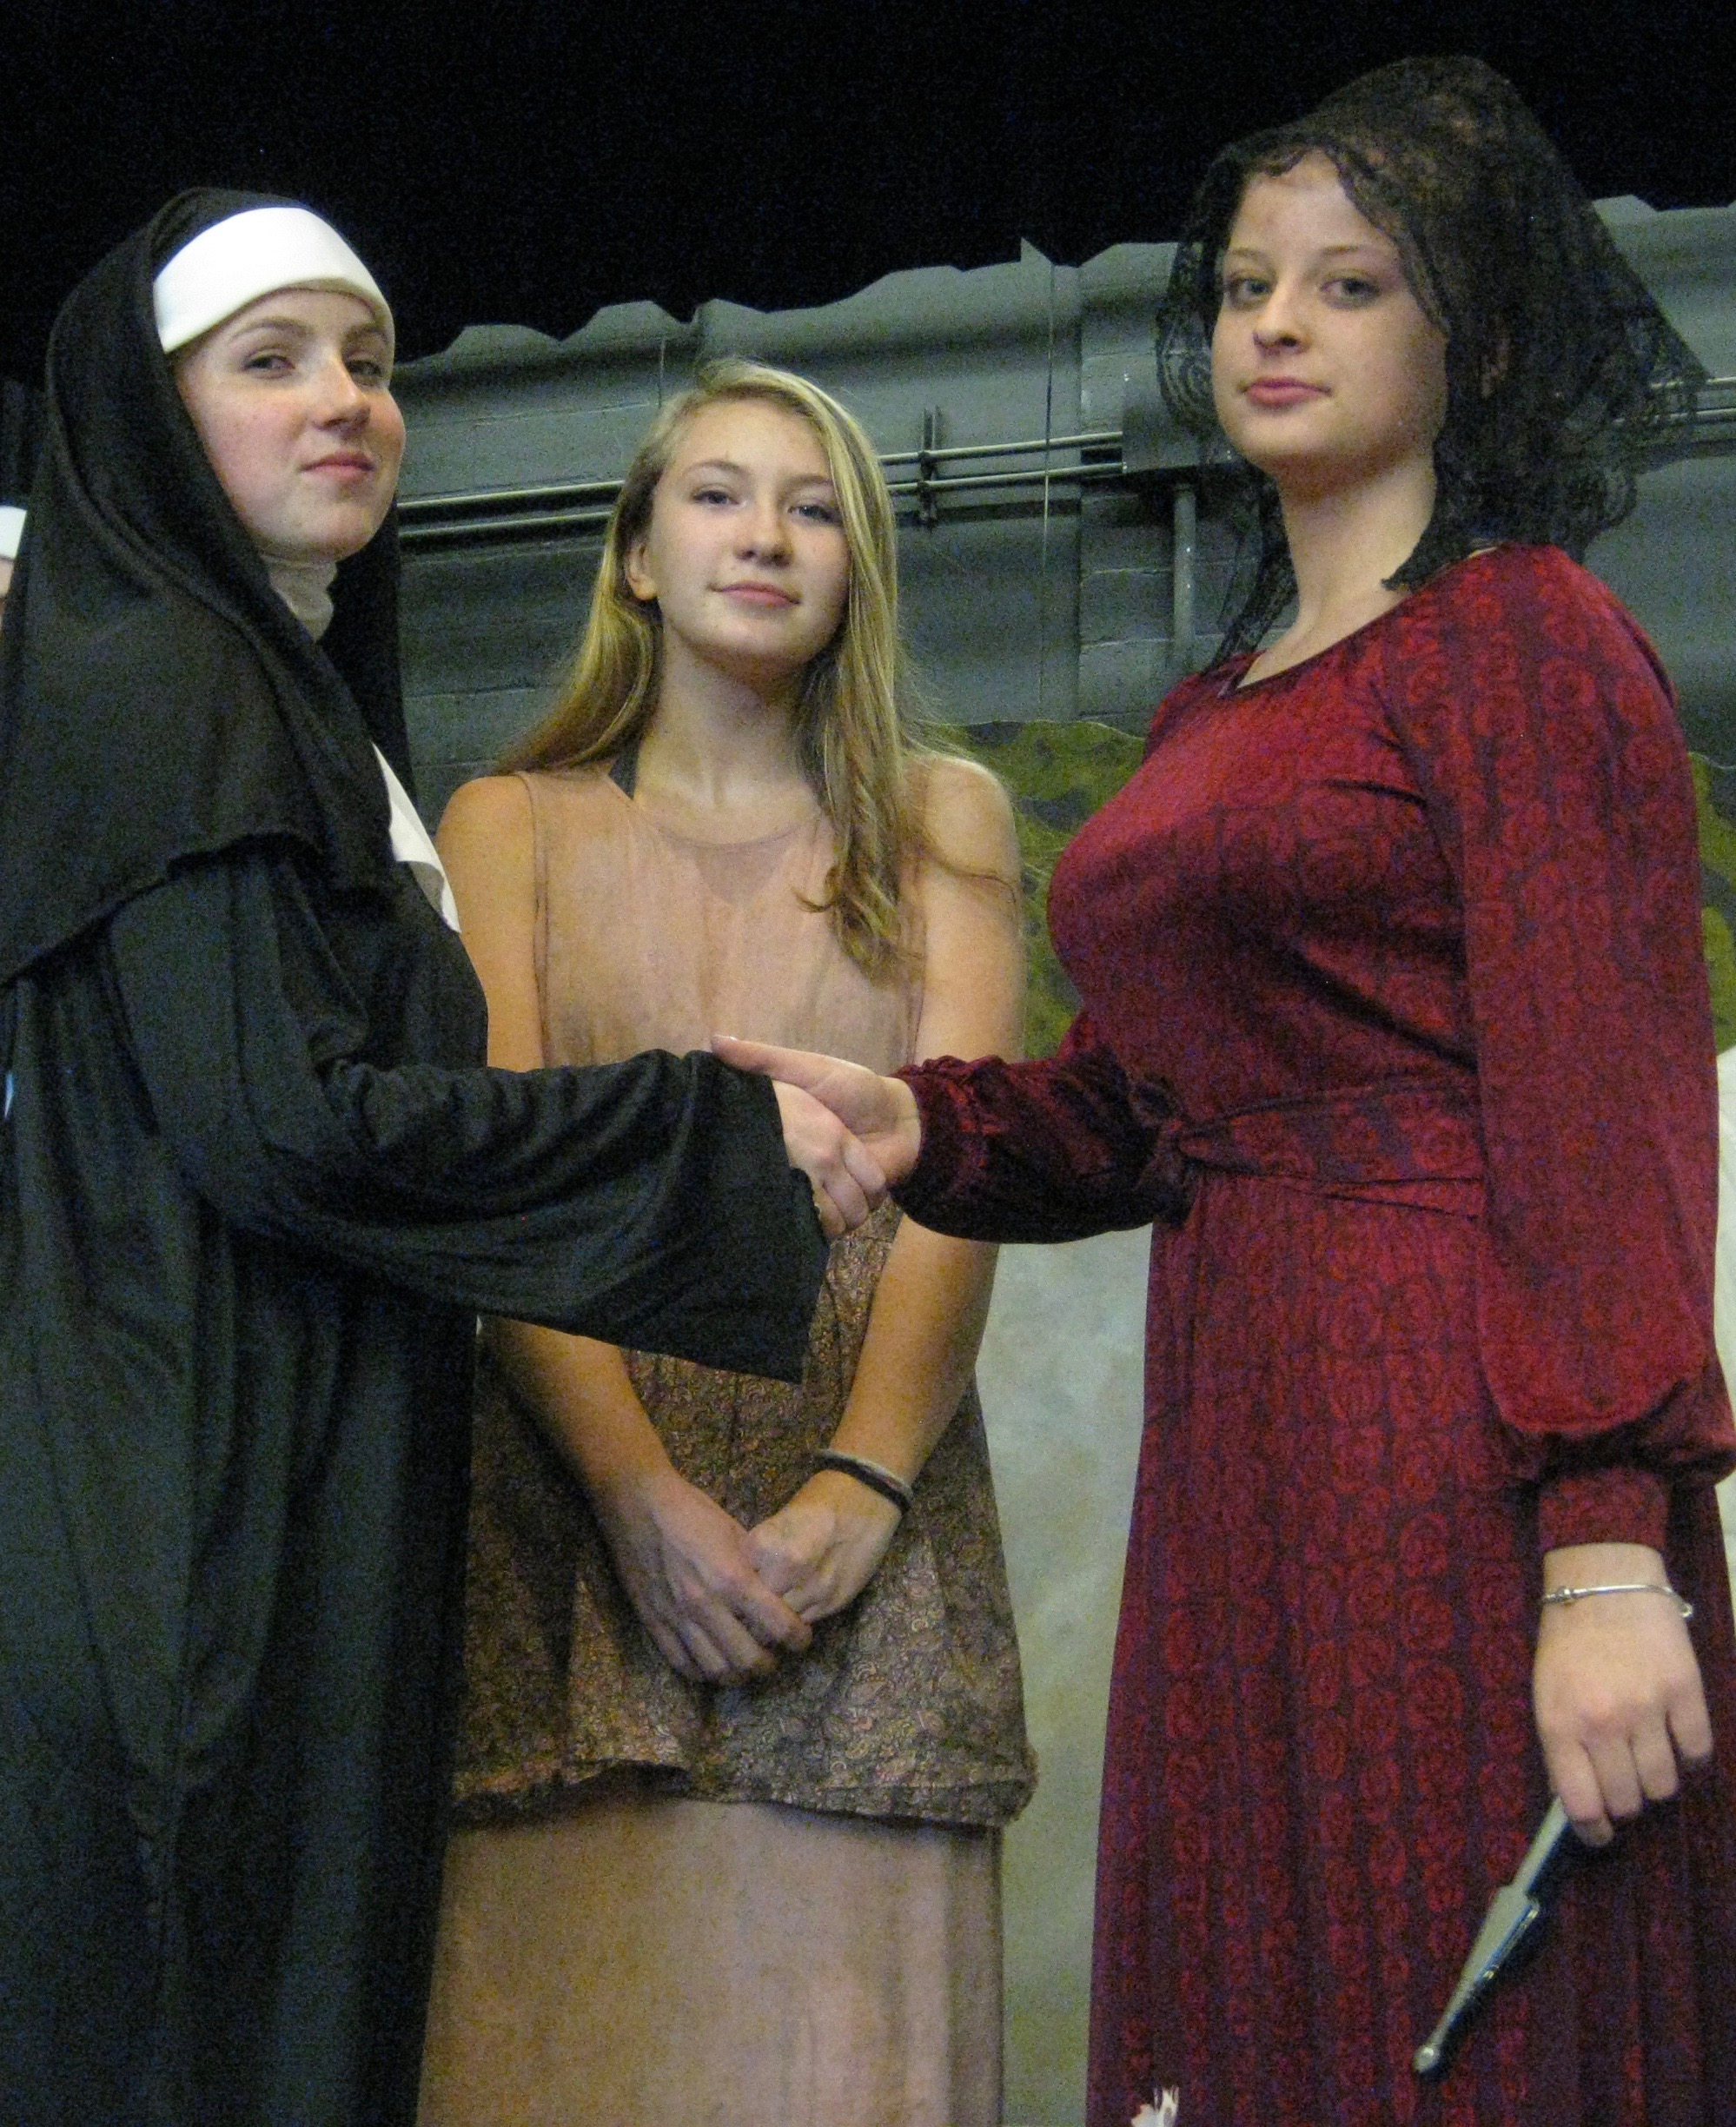 bridge-cast-2-abbess-pepita-dona-maria